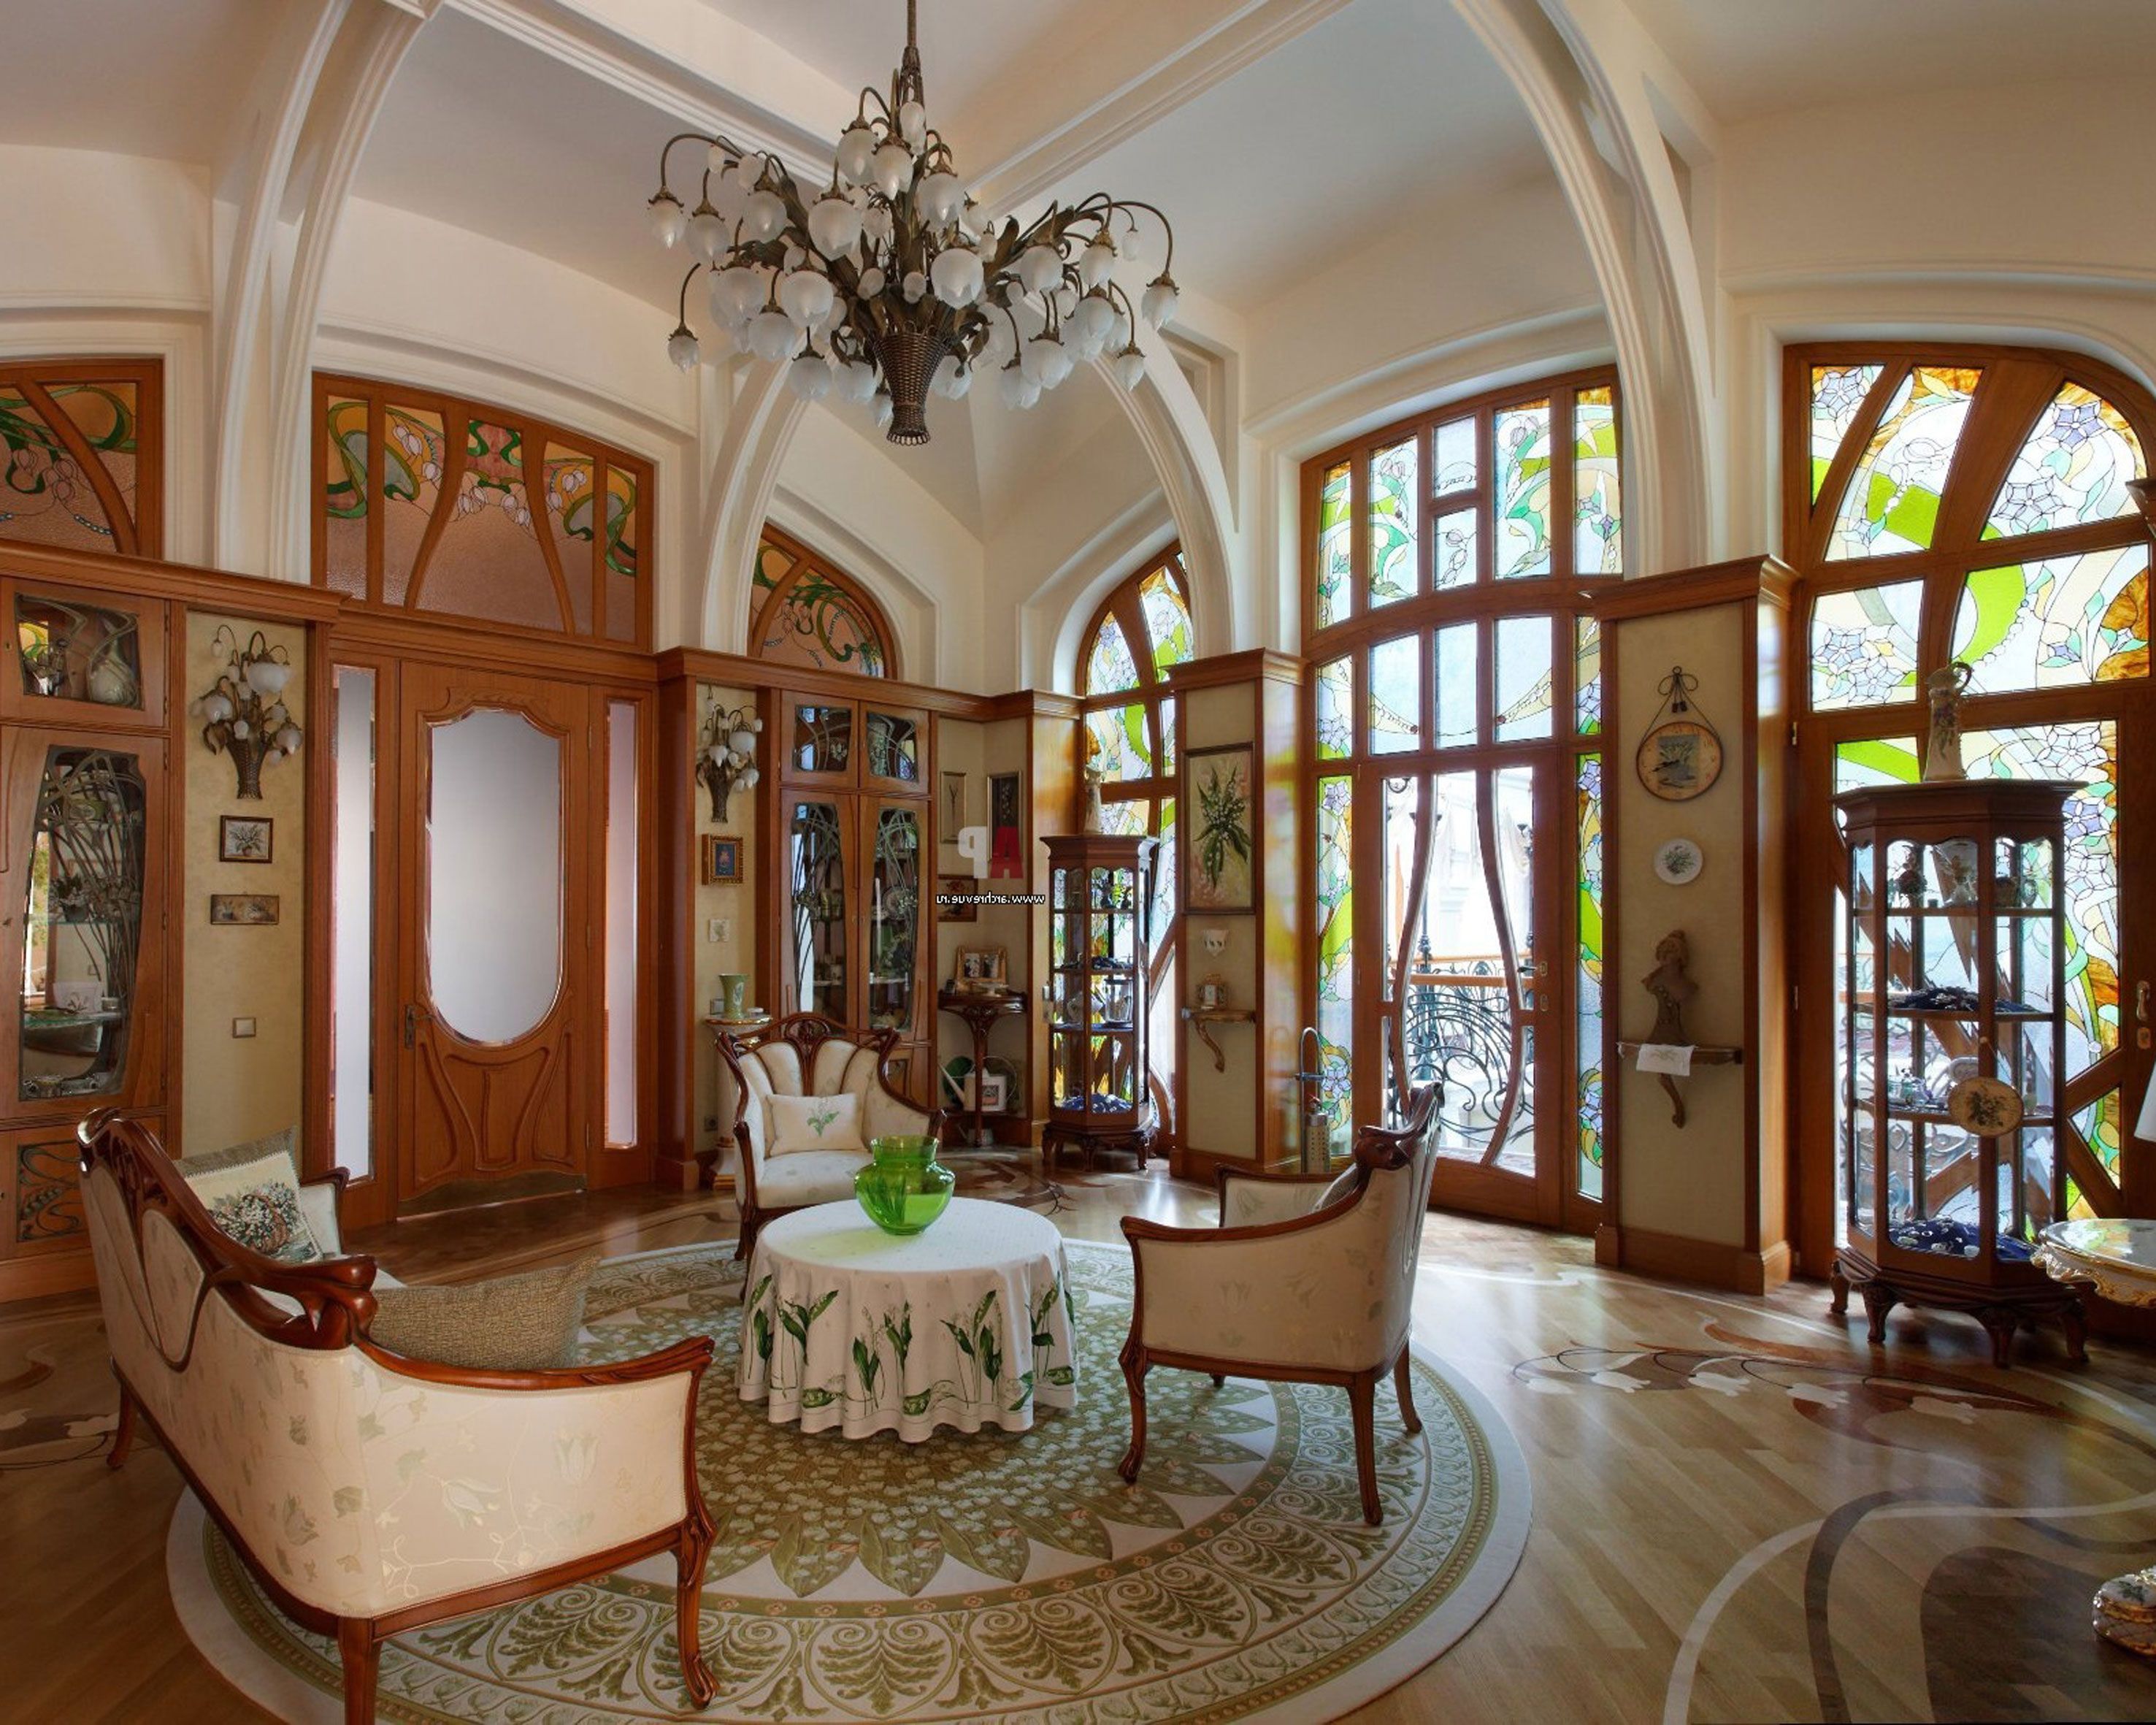 Art Nouveau Interior Design With Its Style Decor